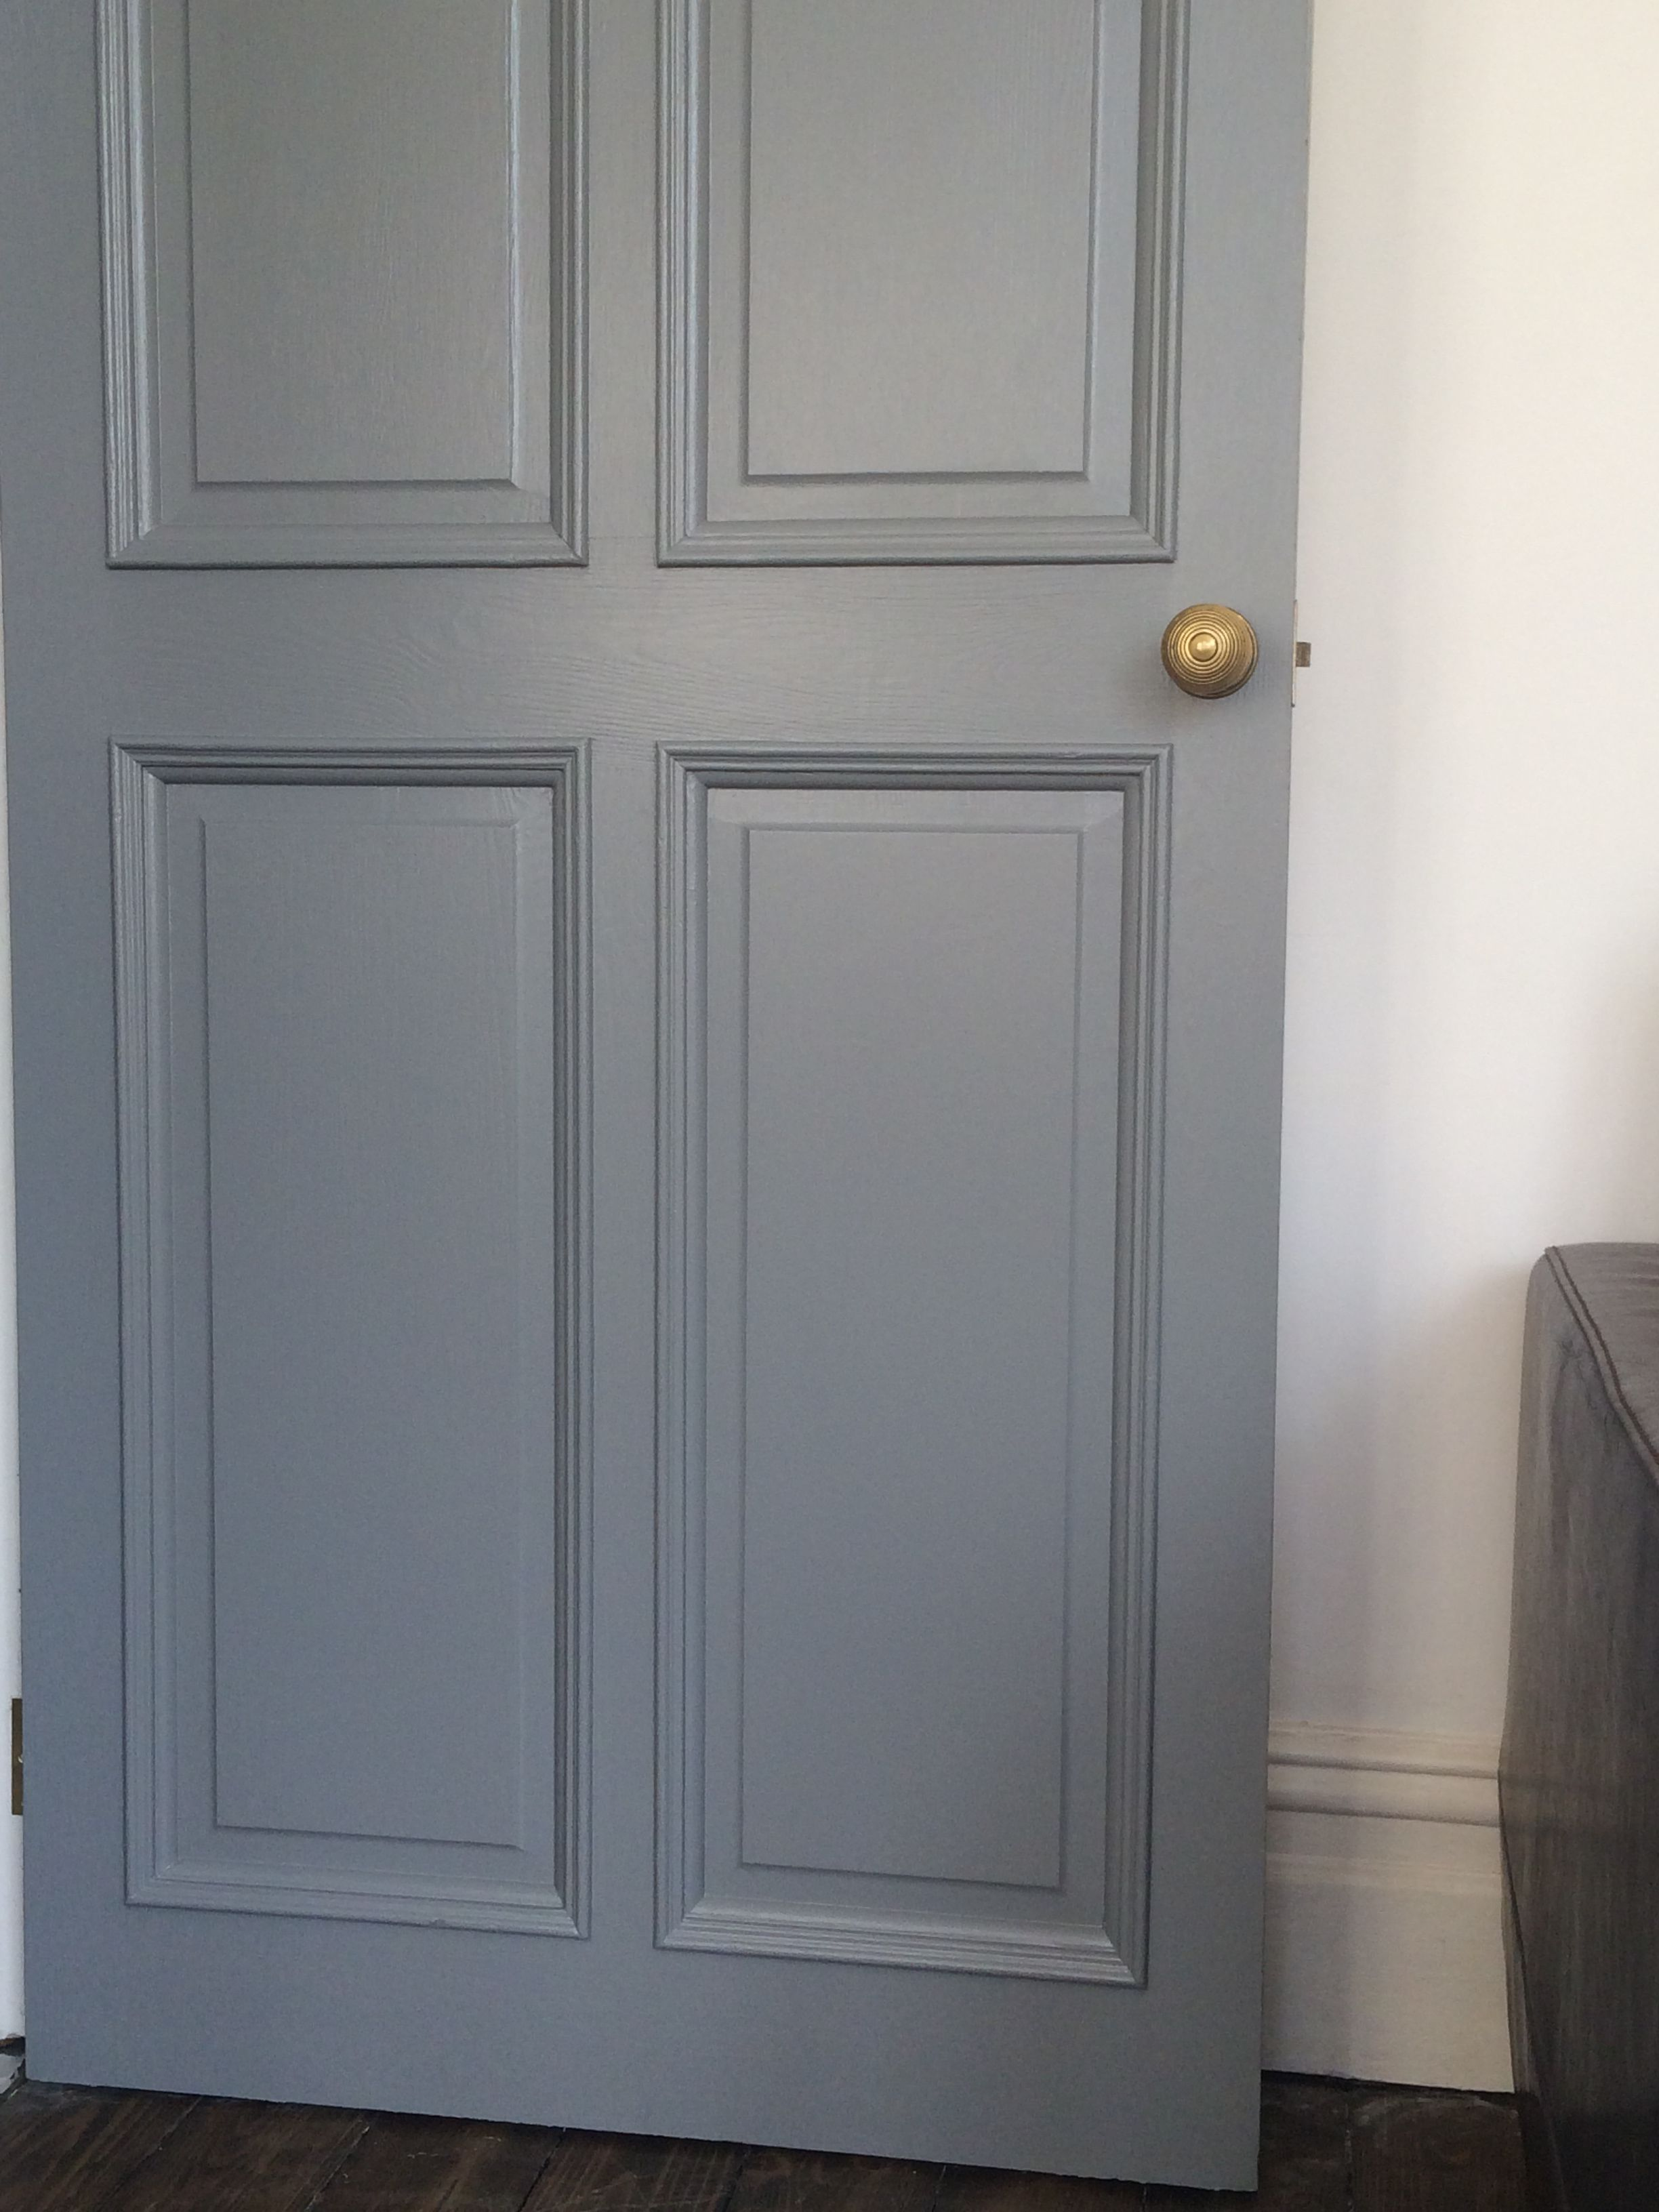 Door painted in Farrow & Ball plummett eggshell